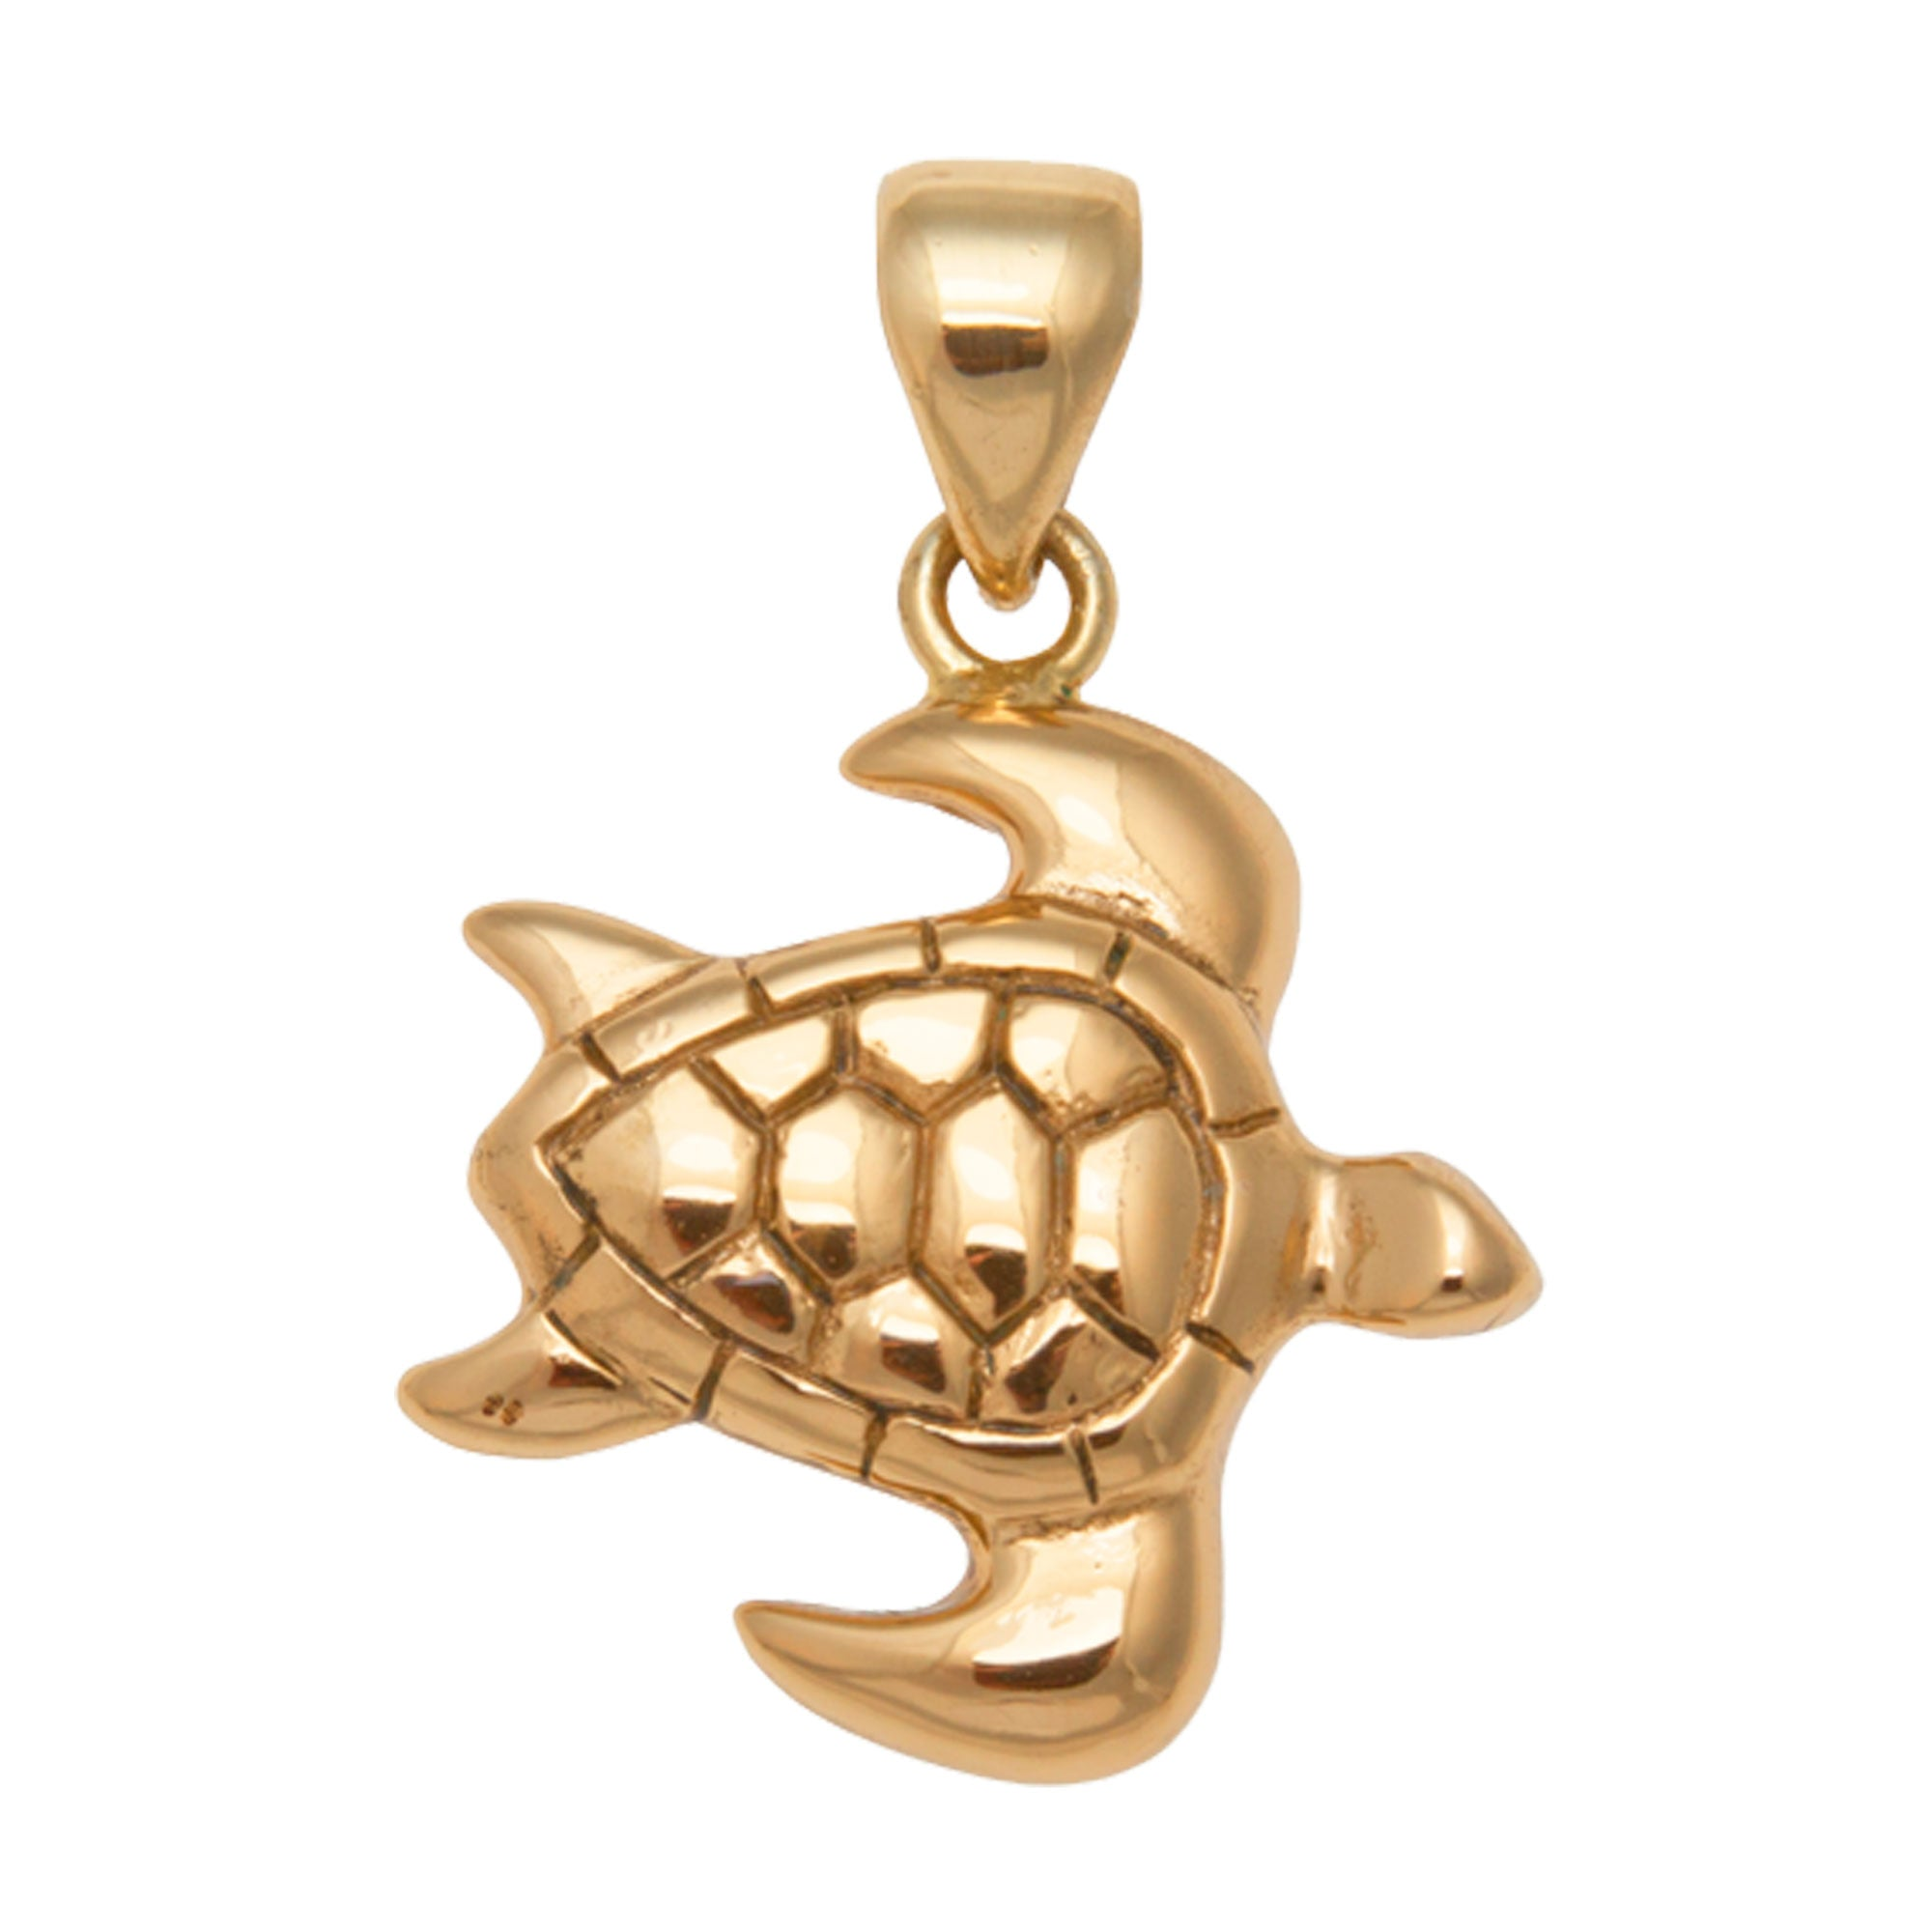 Alchemia Sea Turtle Pendant | Charles Albert Jewelry